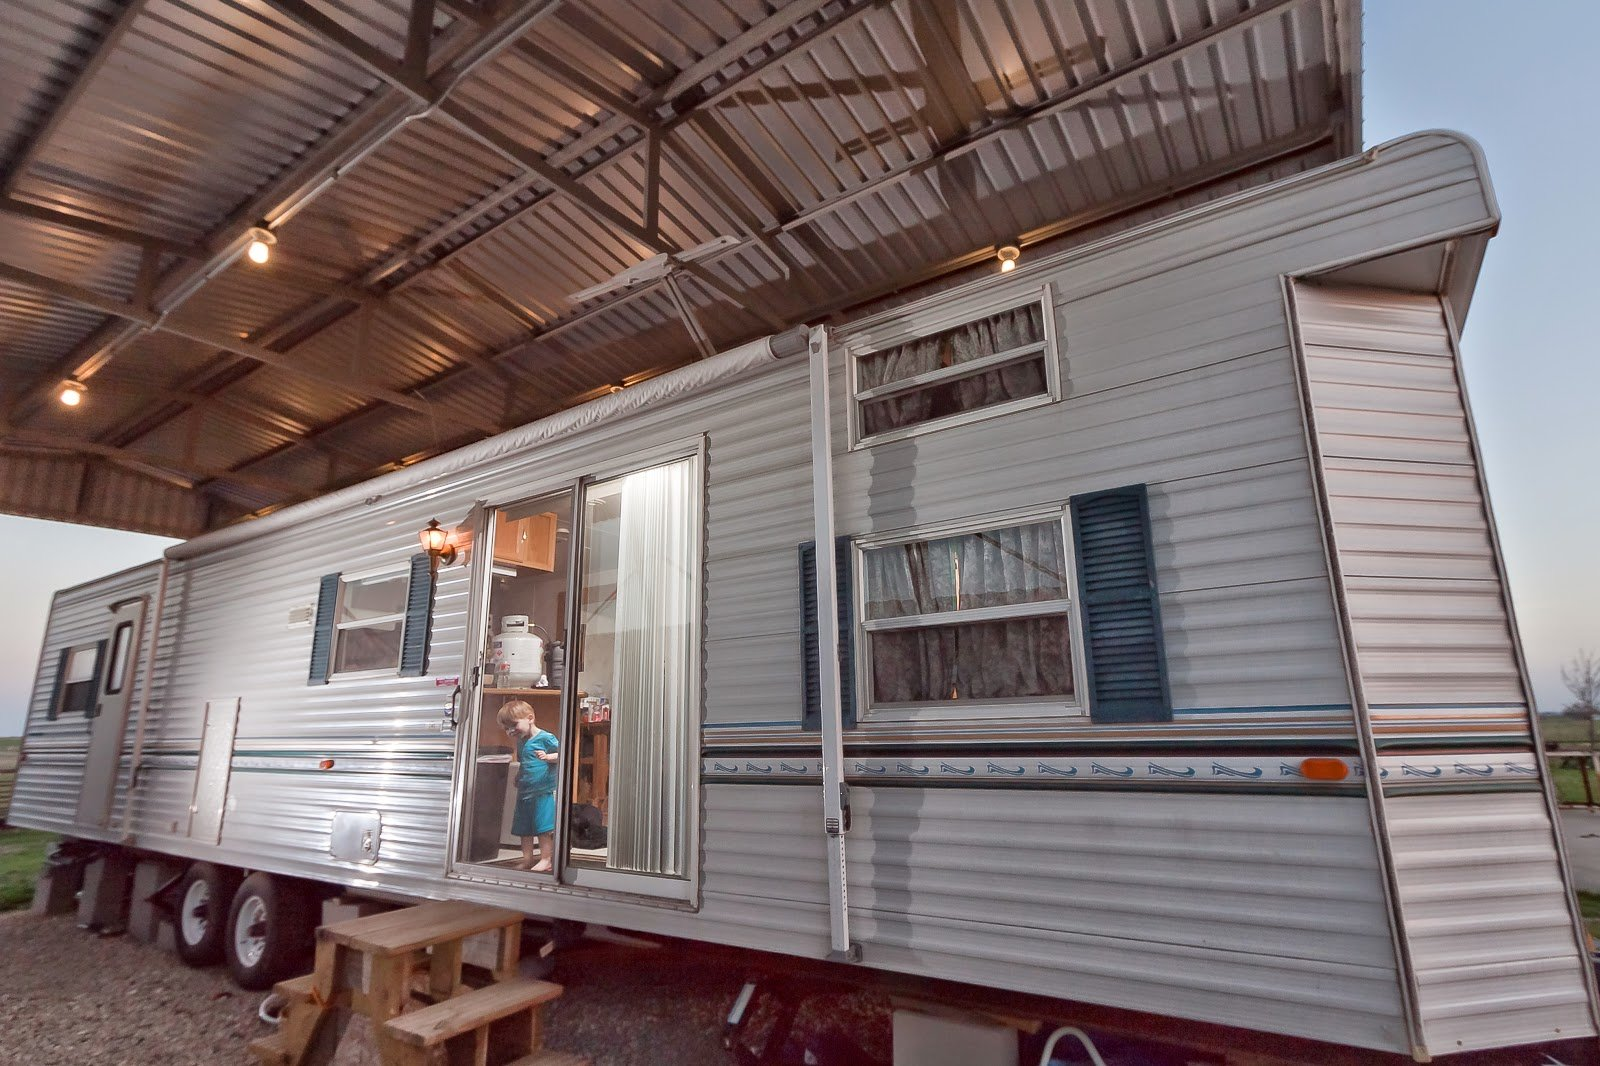 Best Park Model Travel Trailer For Sale With Pictures